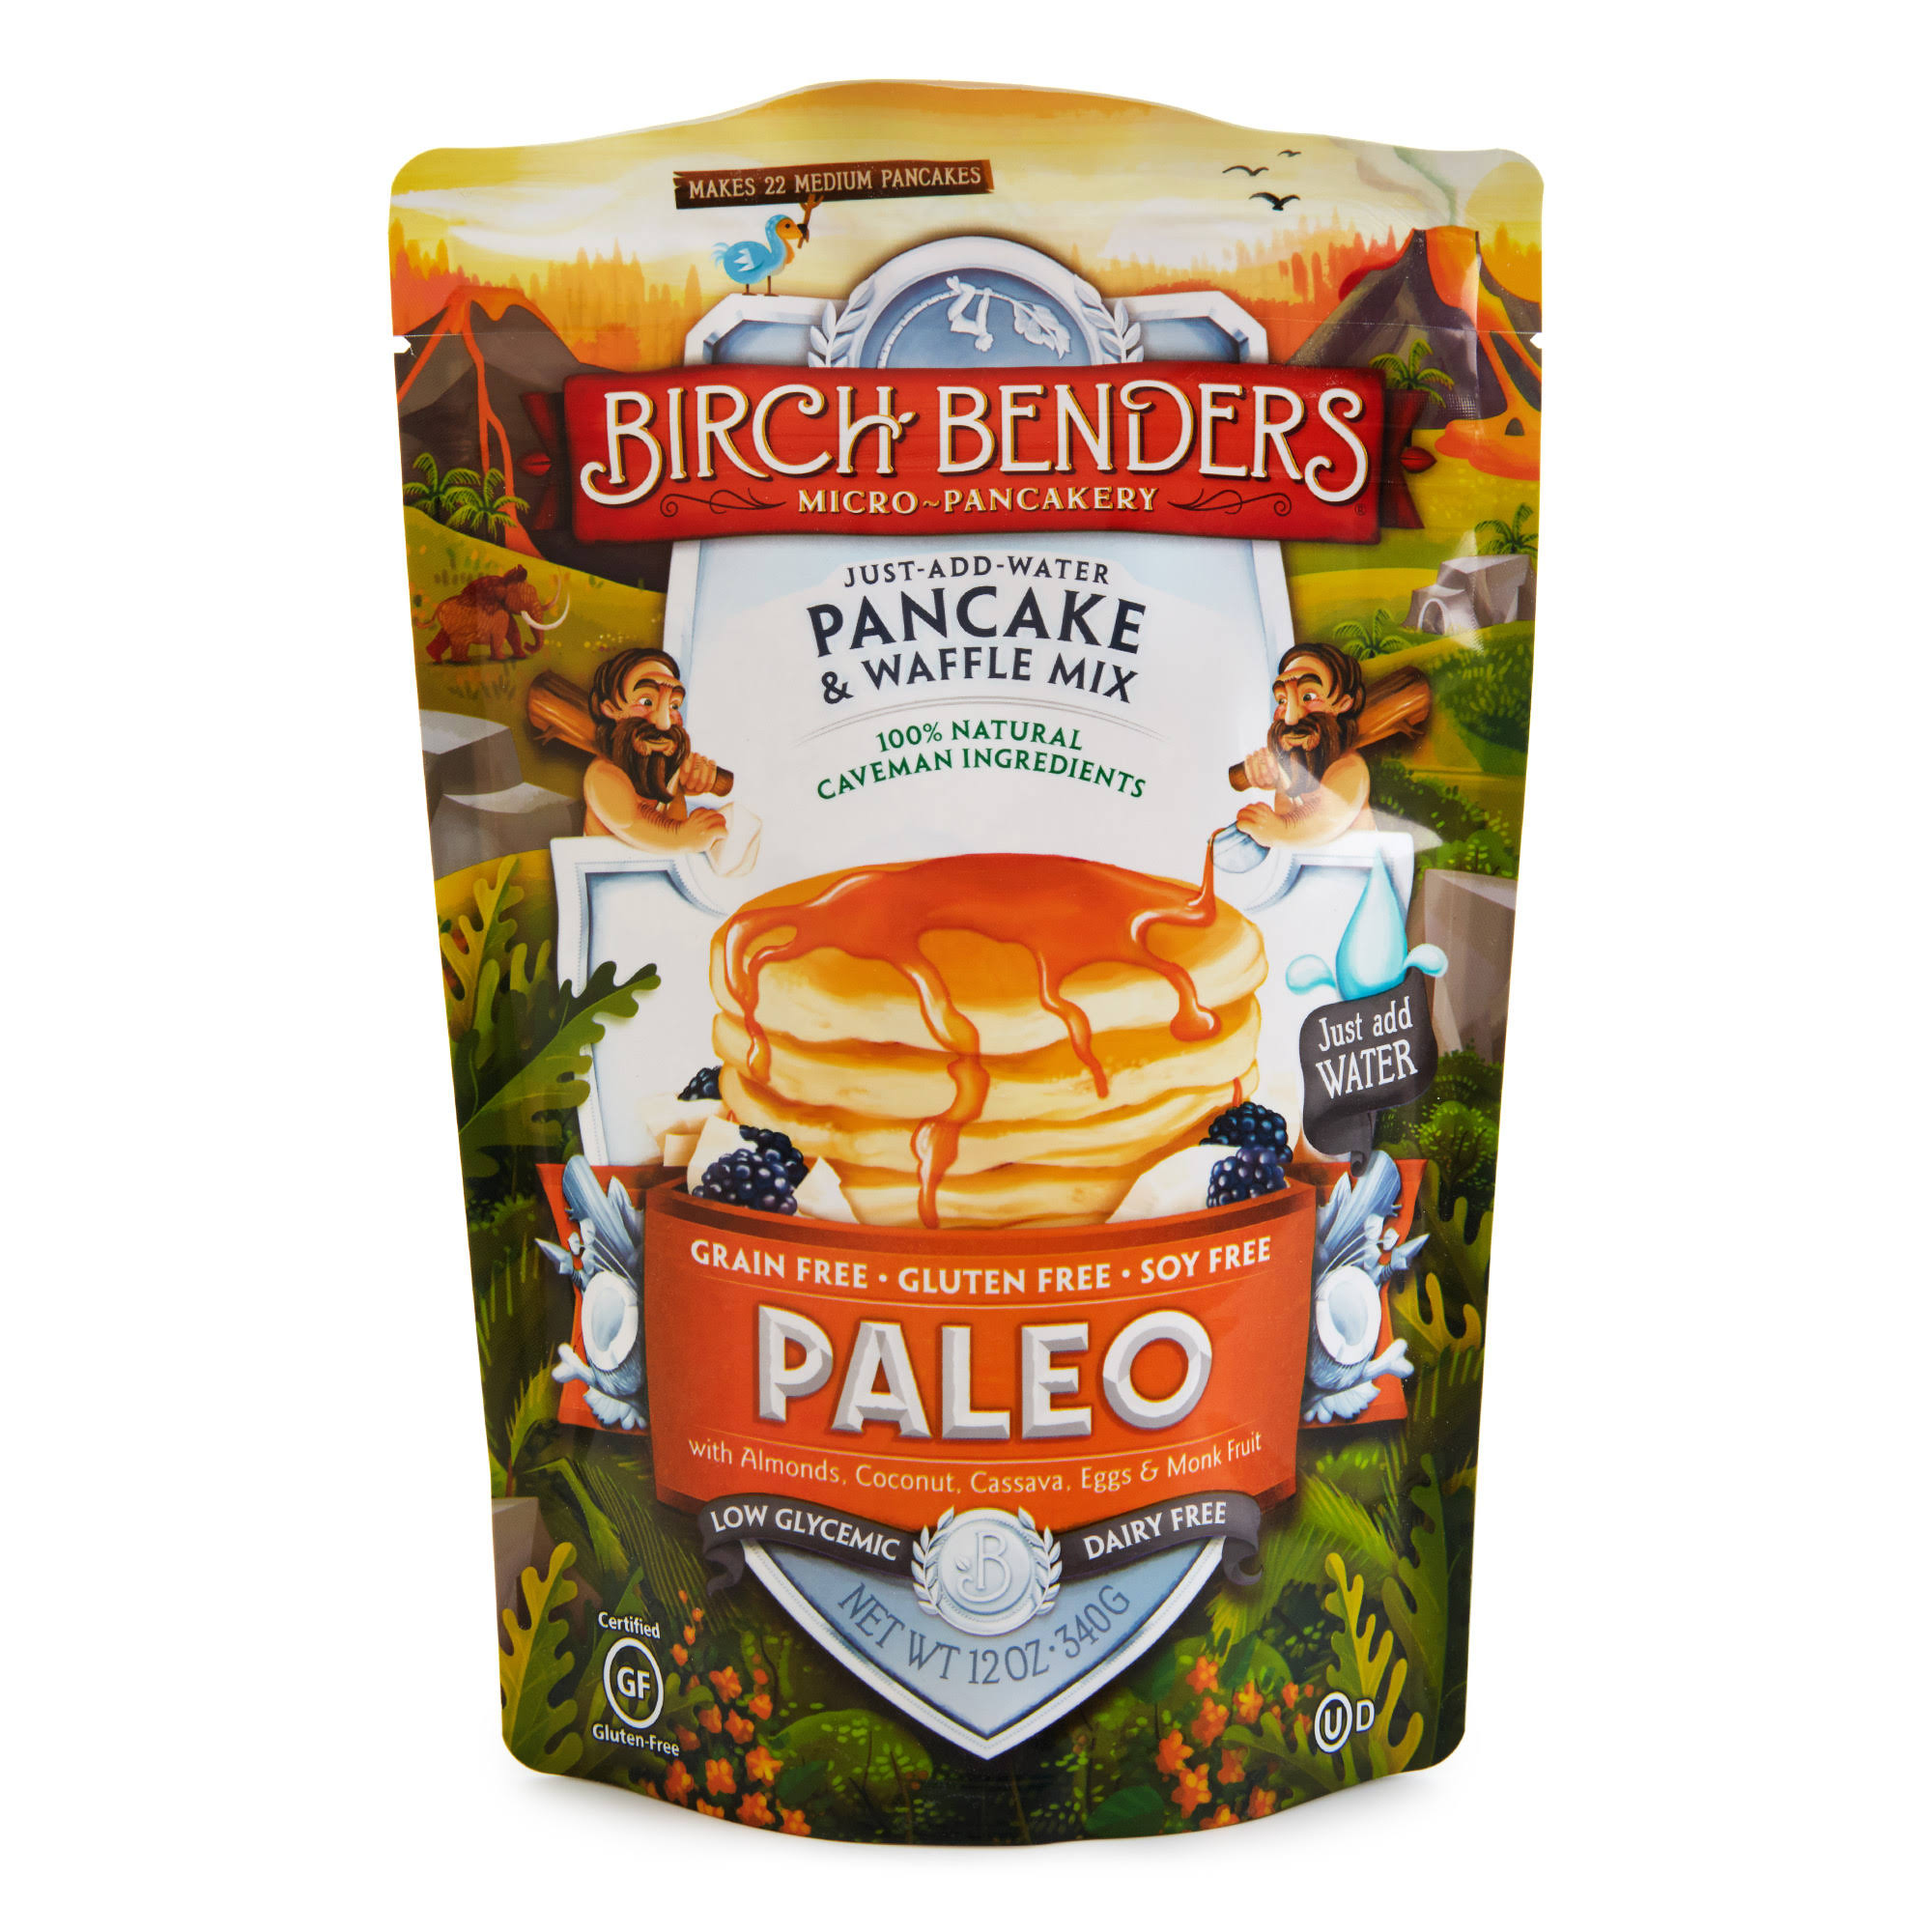 Birch Benders Pancake and Waffle Mix - Paleo, Gluten and Grain Free, 12oz